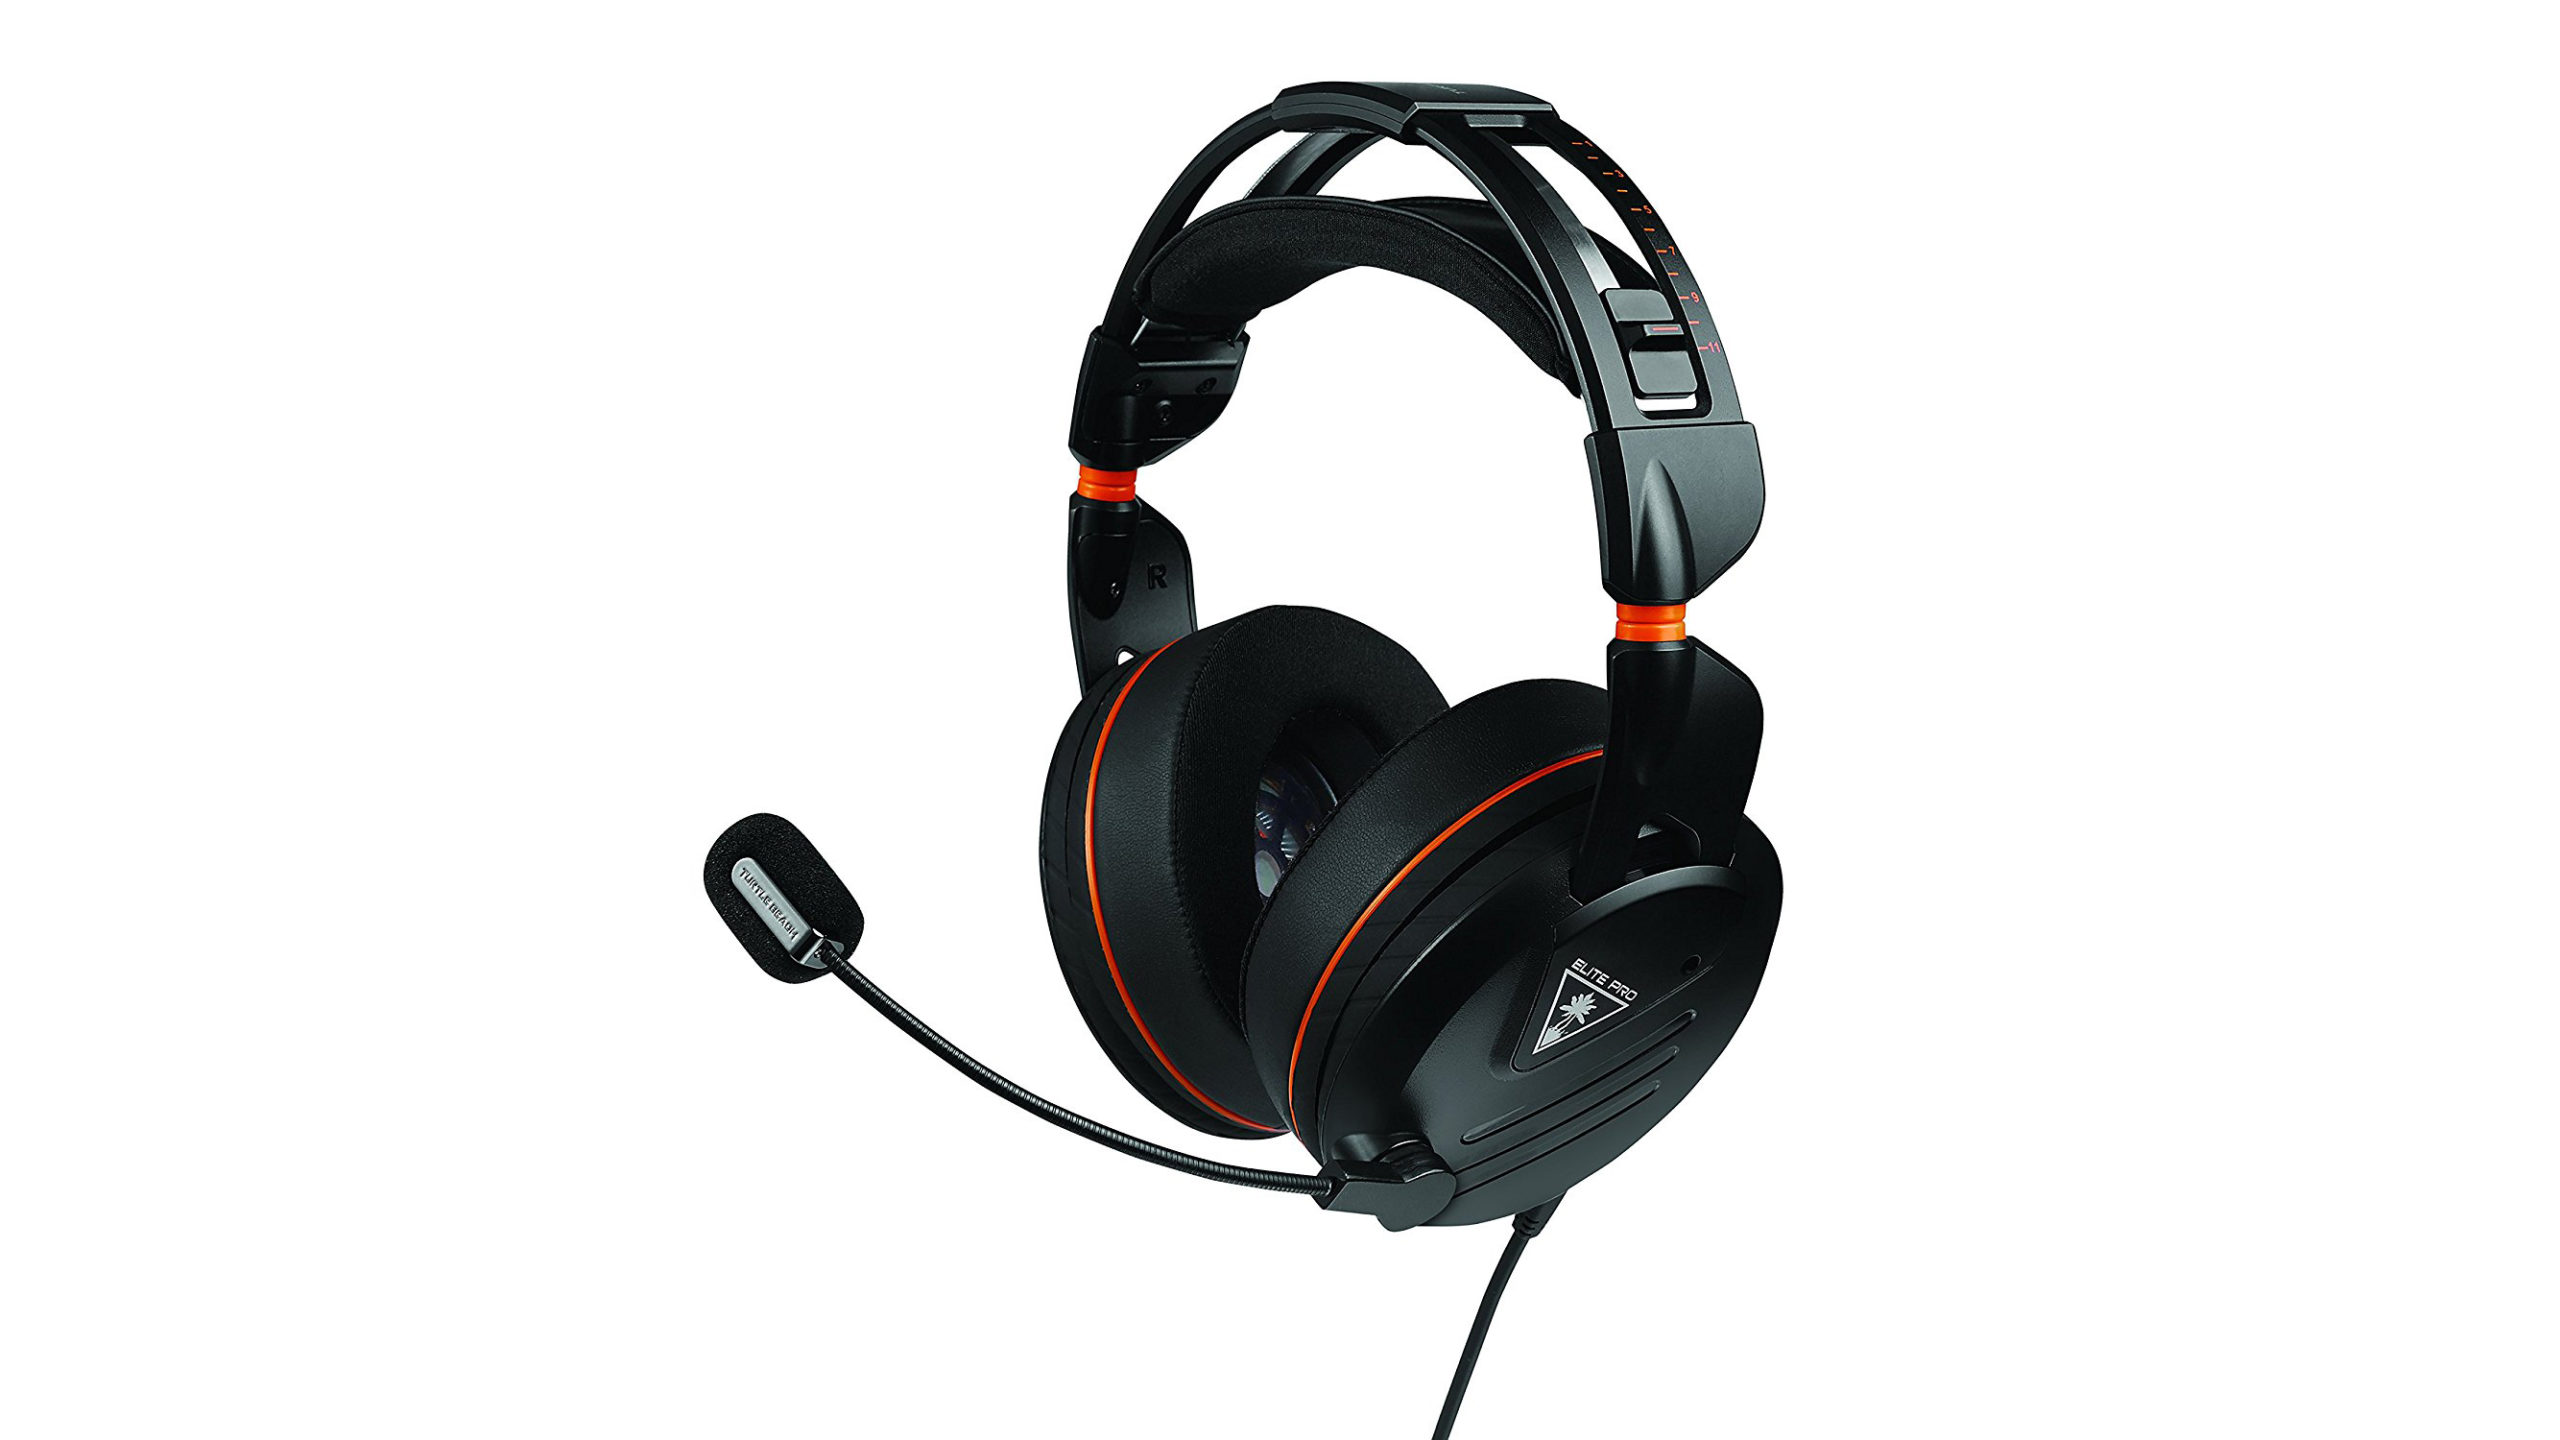 Best Gaming Headset 2017 The Best Ps4 Xbox One And Pc Gaming Headsets You Can Buy